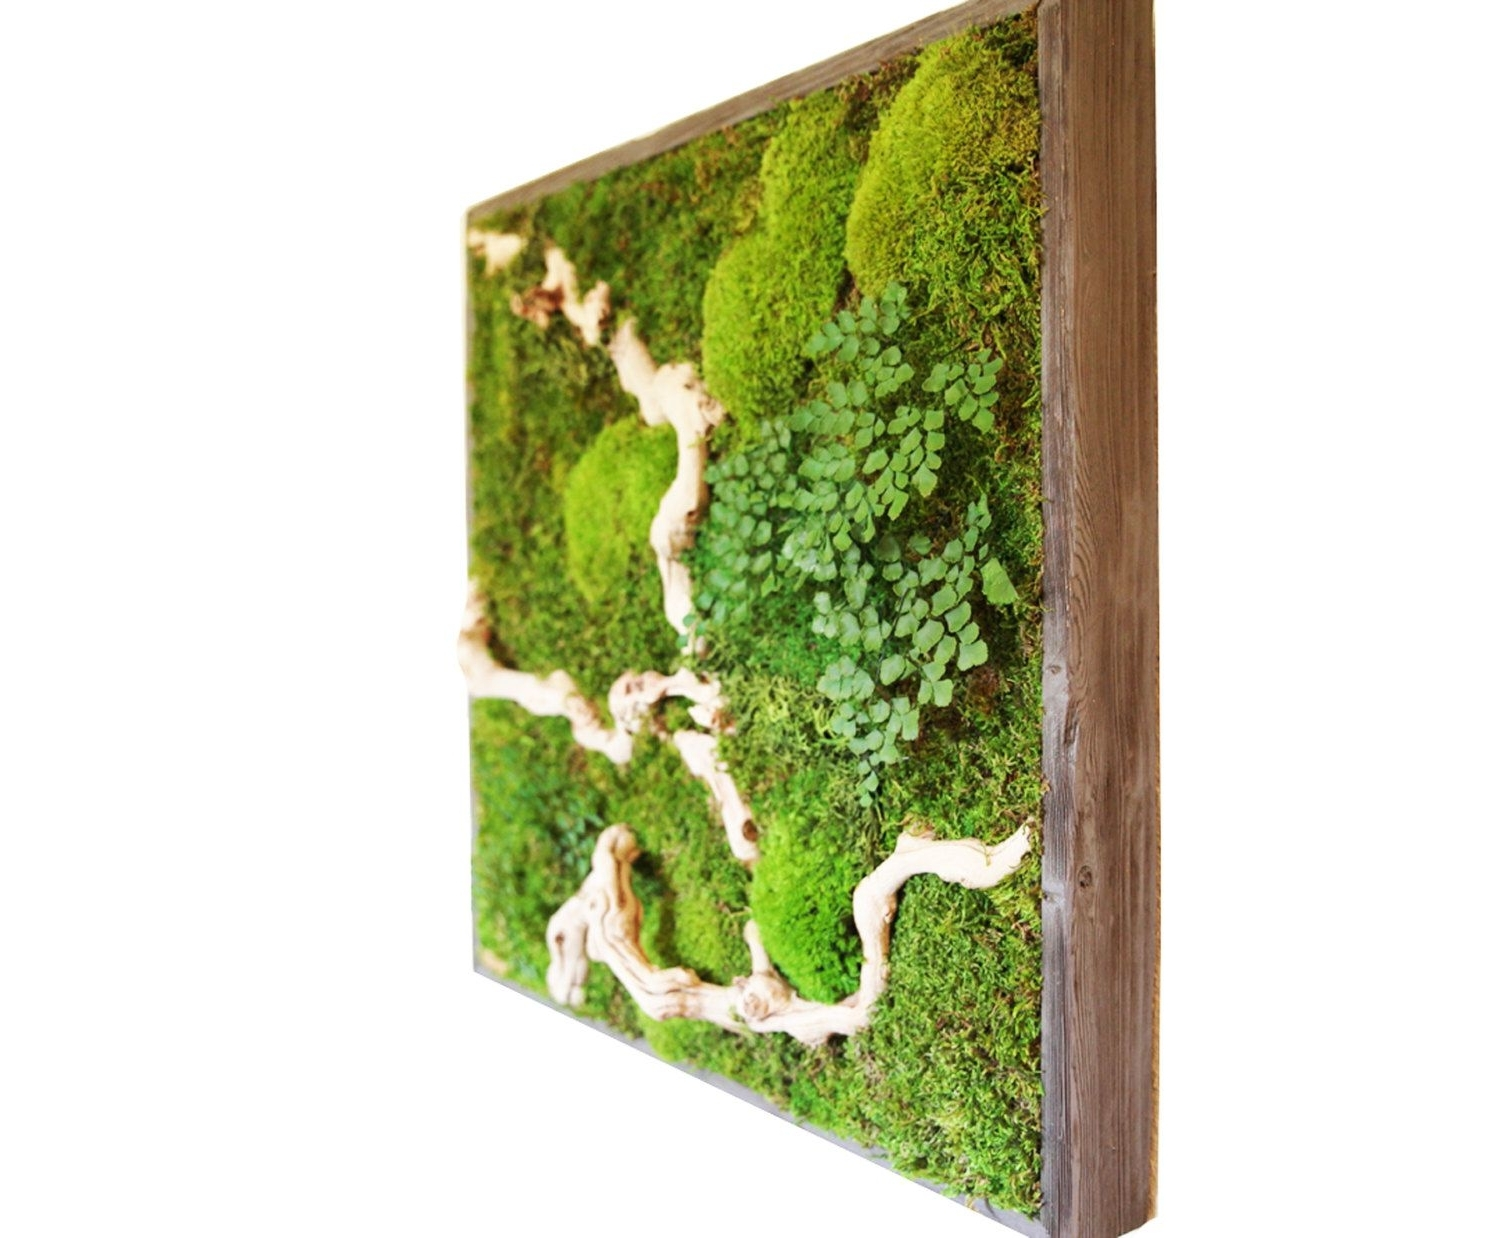 Preferred Green Wall Accents Pertaining To 15 Spectacular Moss Wall Art Designs That Redefine The Living Wall (Gallery 5 of 15)